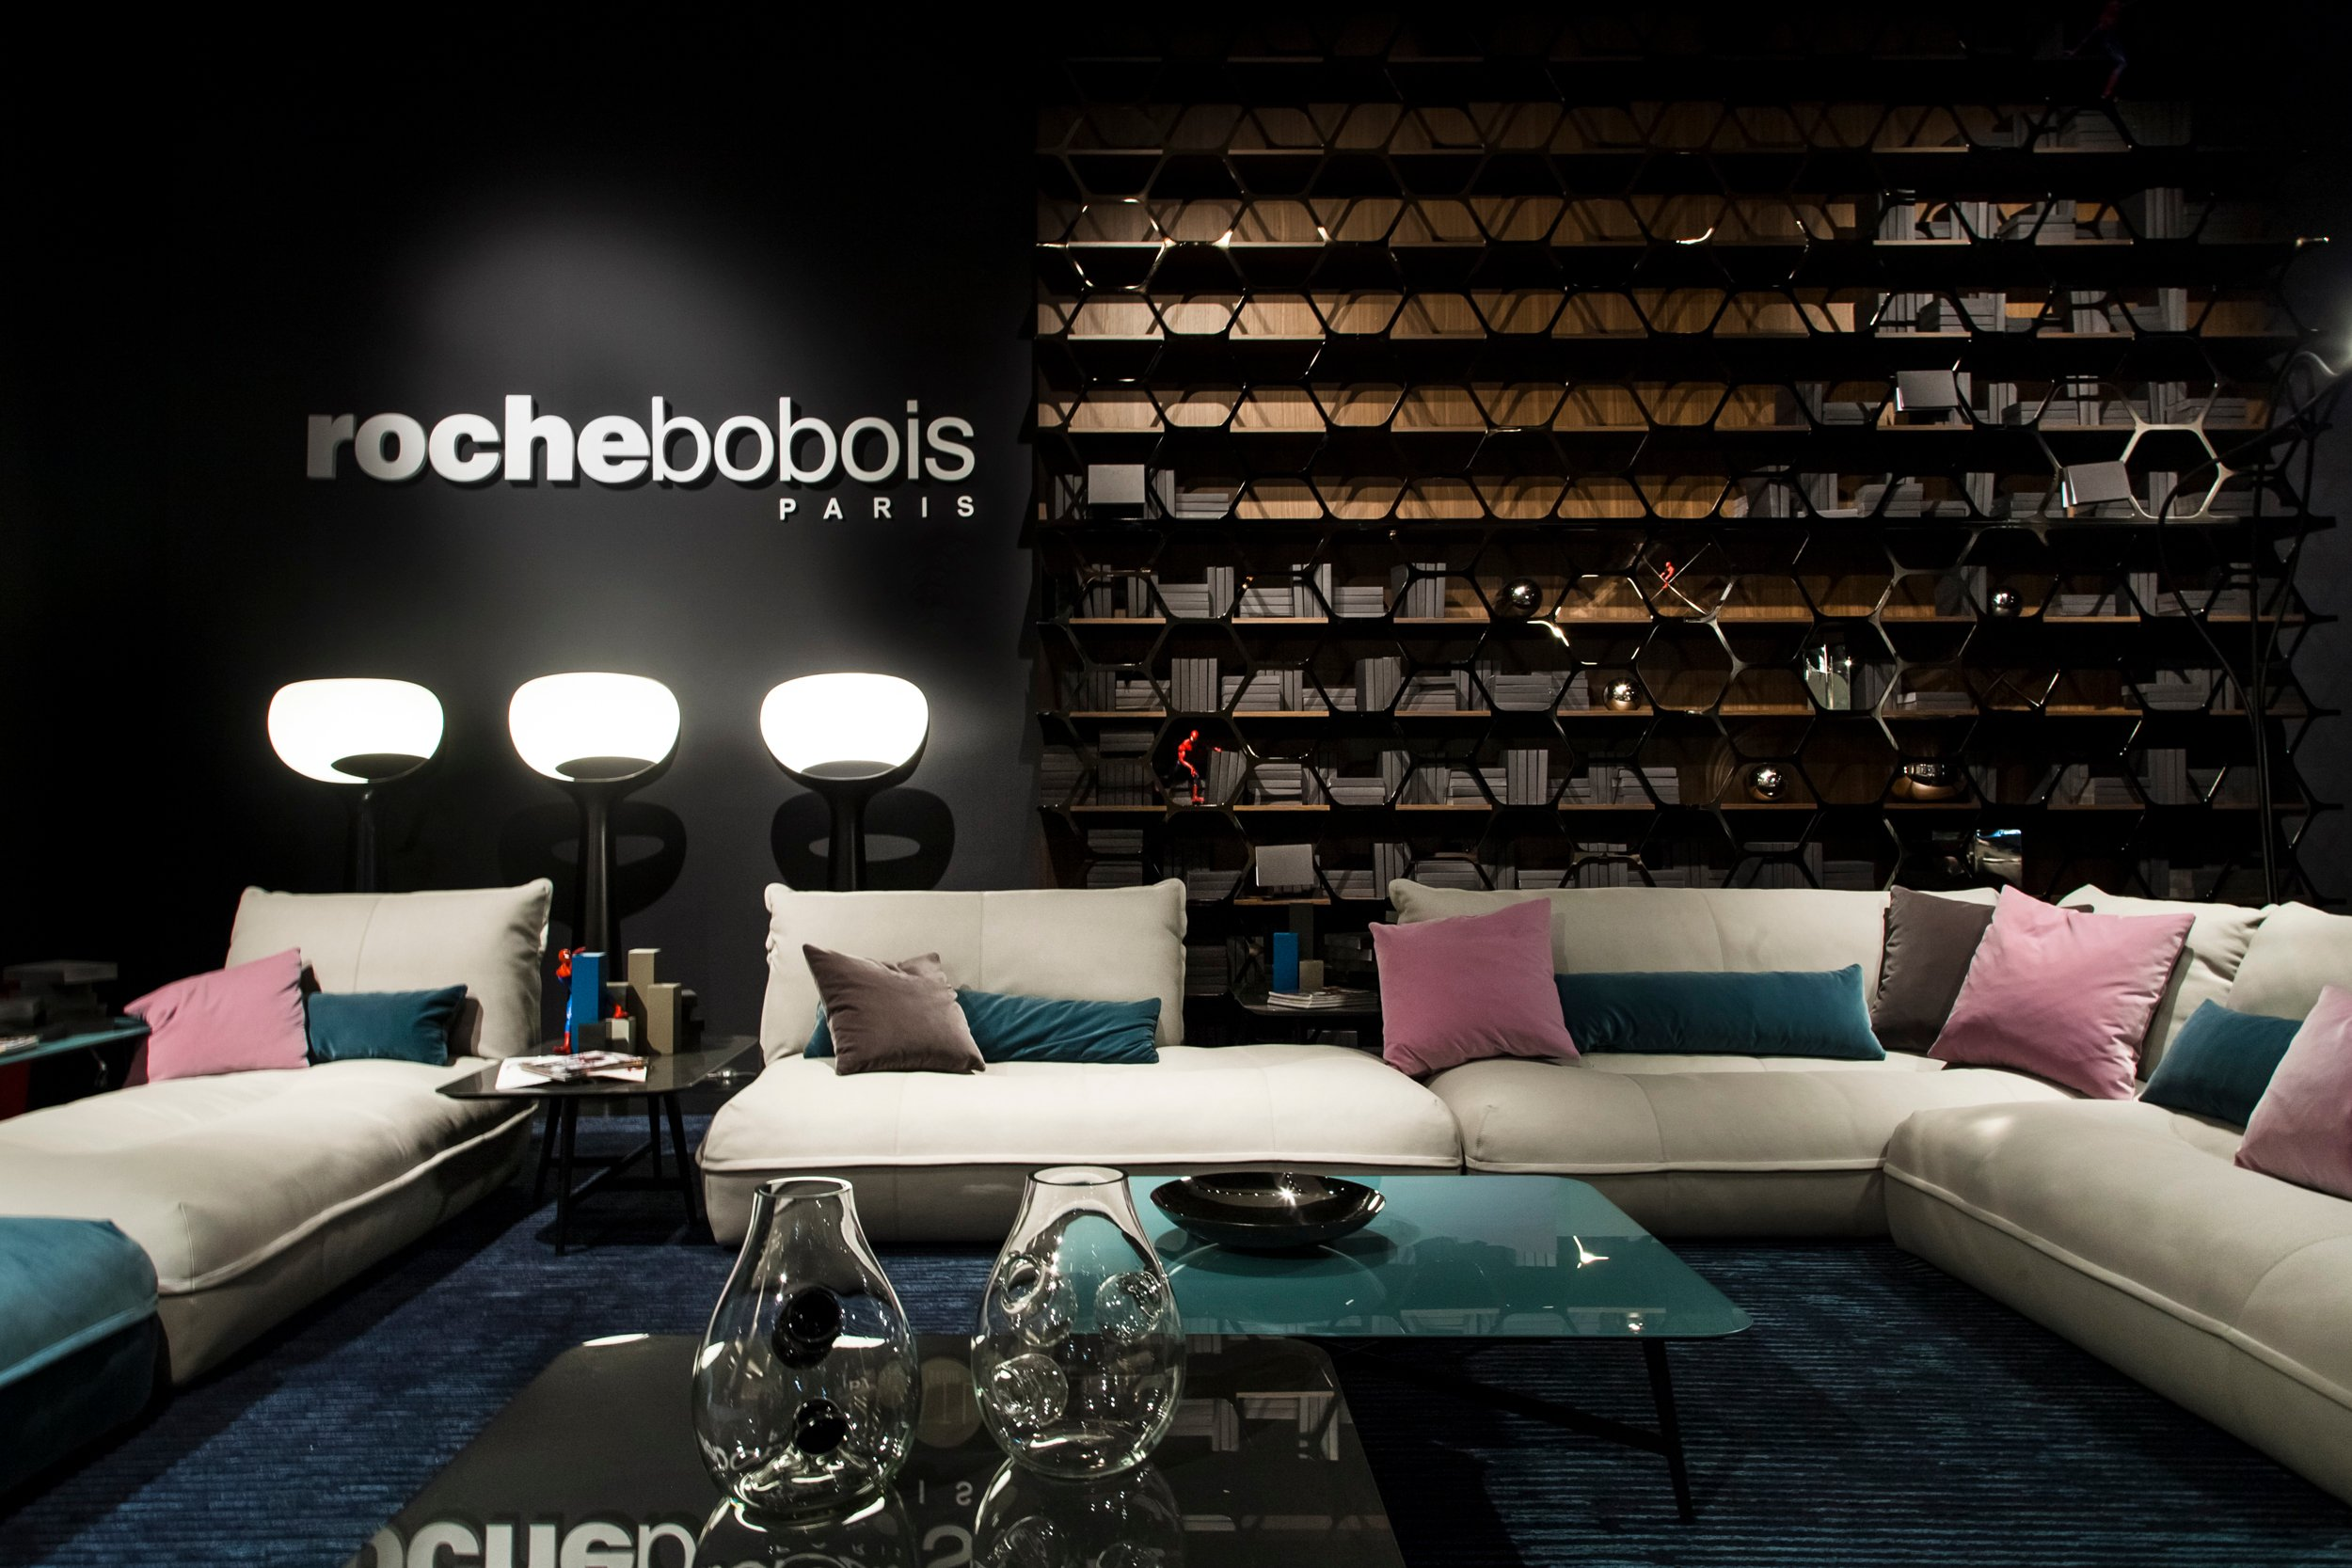 modular tanned leather sofa octet by roche bobois design maurizio manzoni roberto tapinassi